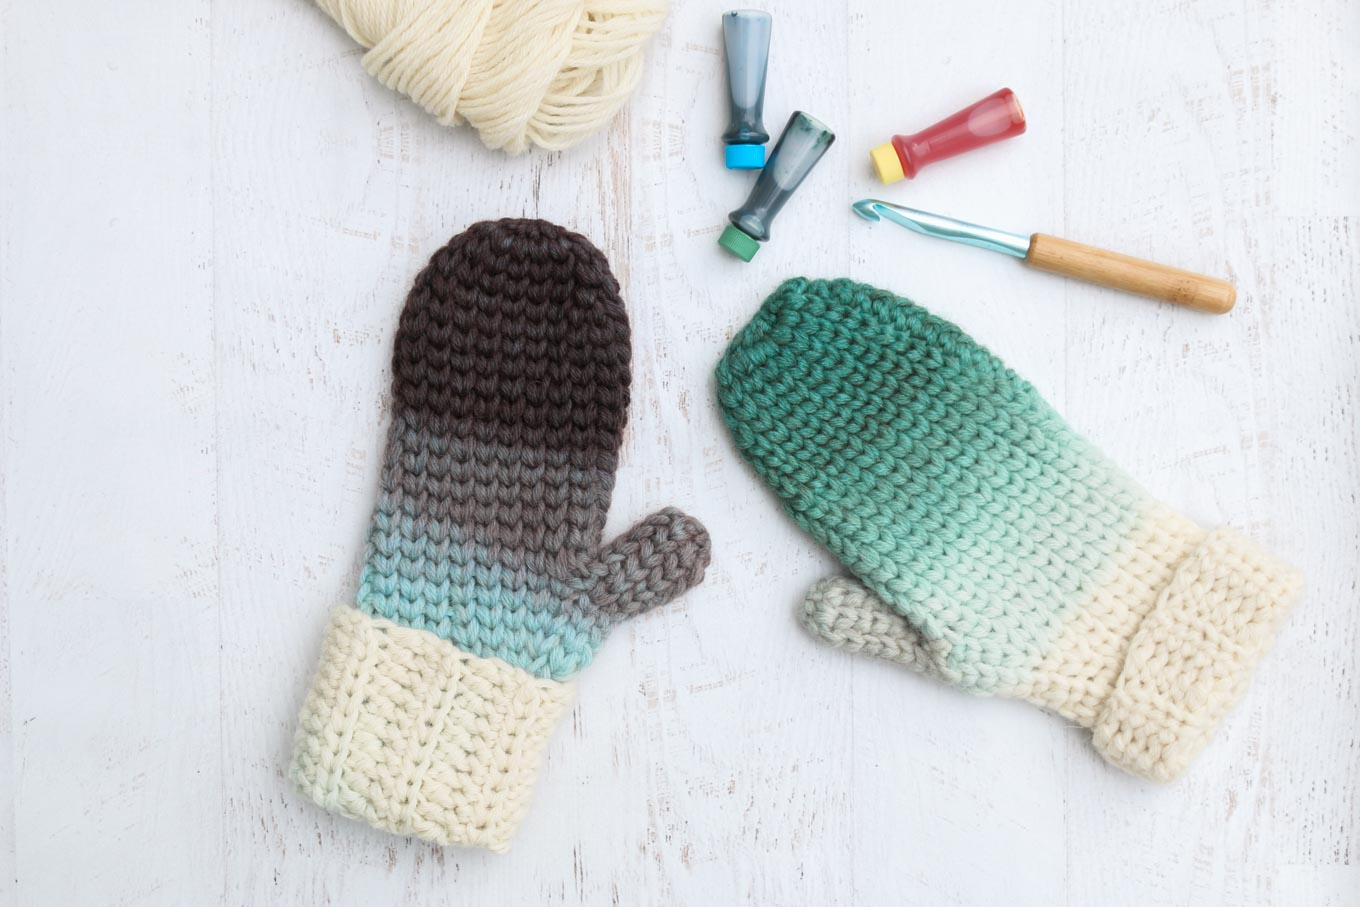 4e3af4cae628 How to Dip Dye Crochet or Knit Items With Food Coloring - Make   Do Crew